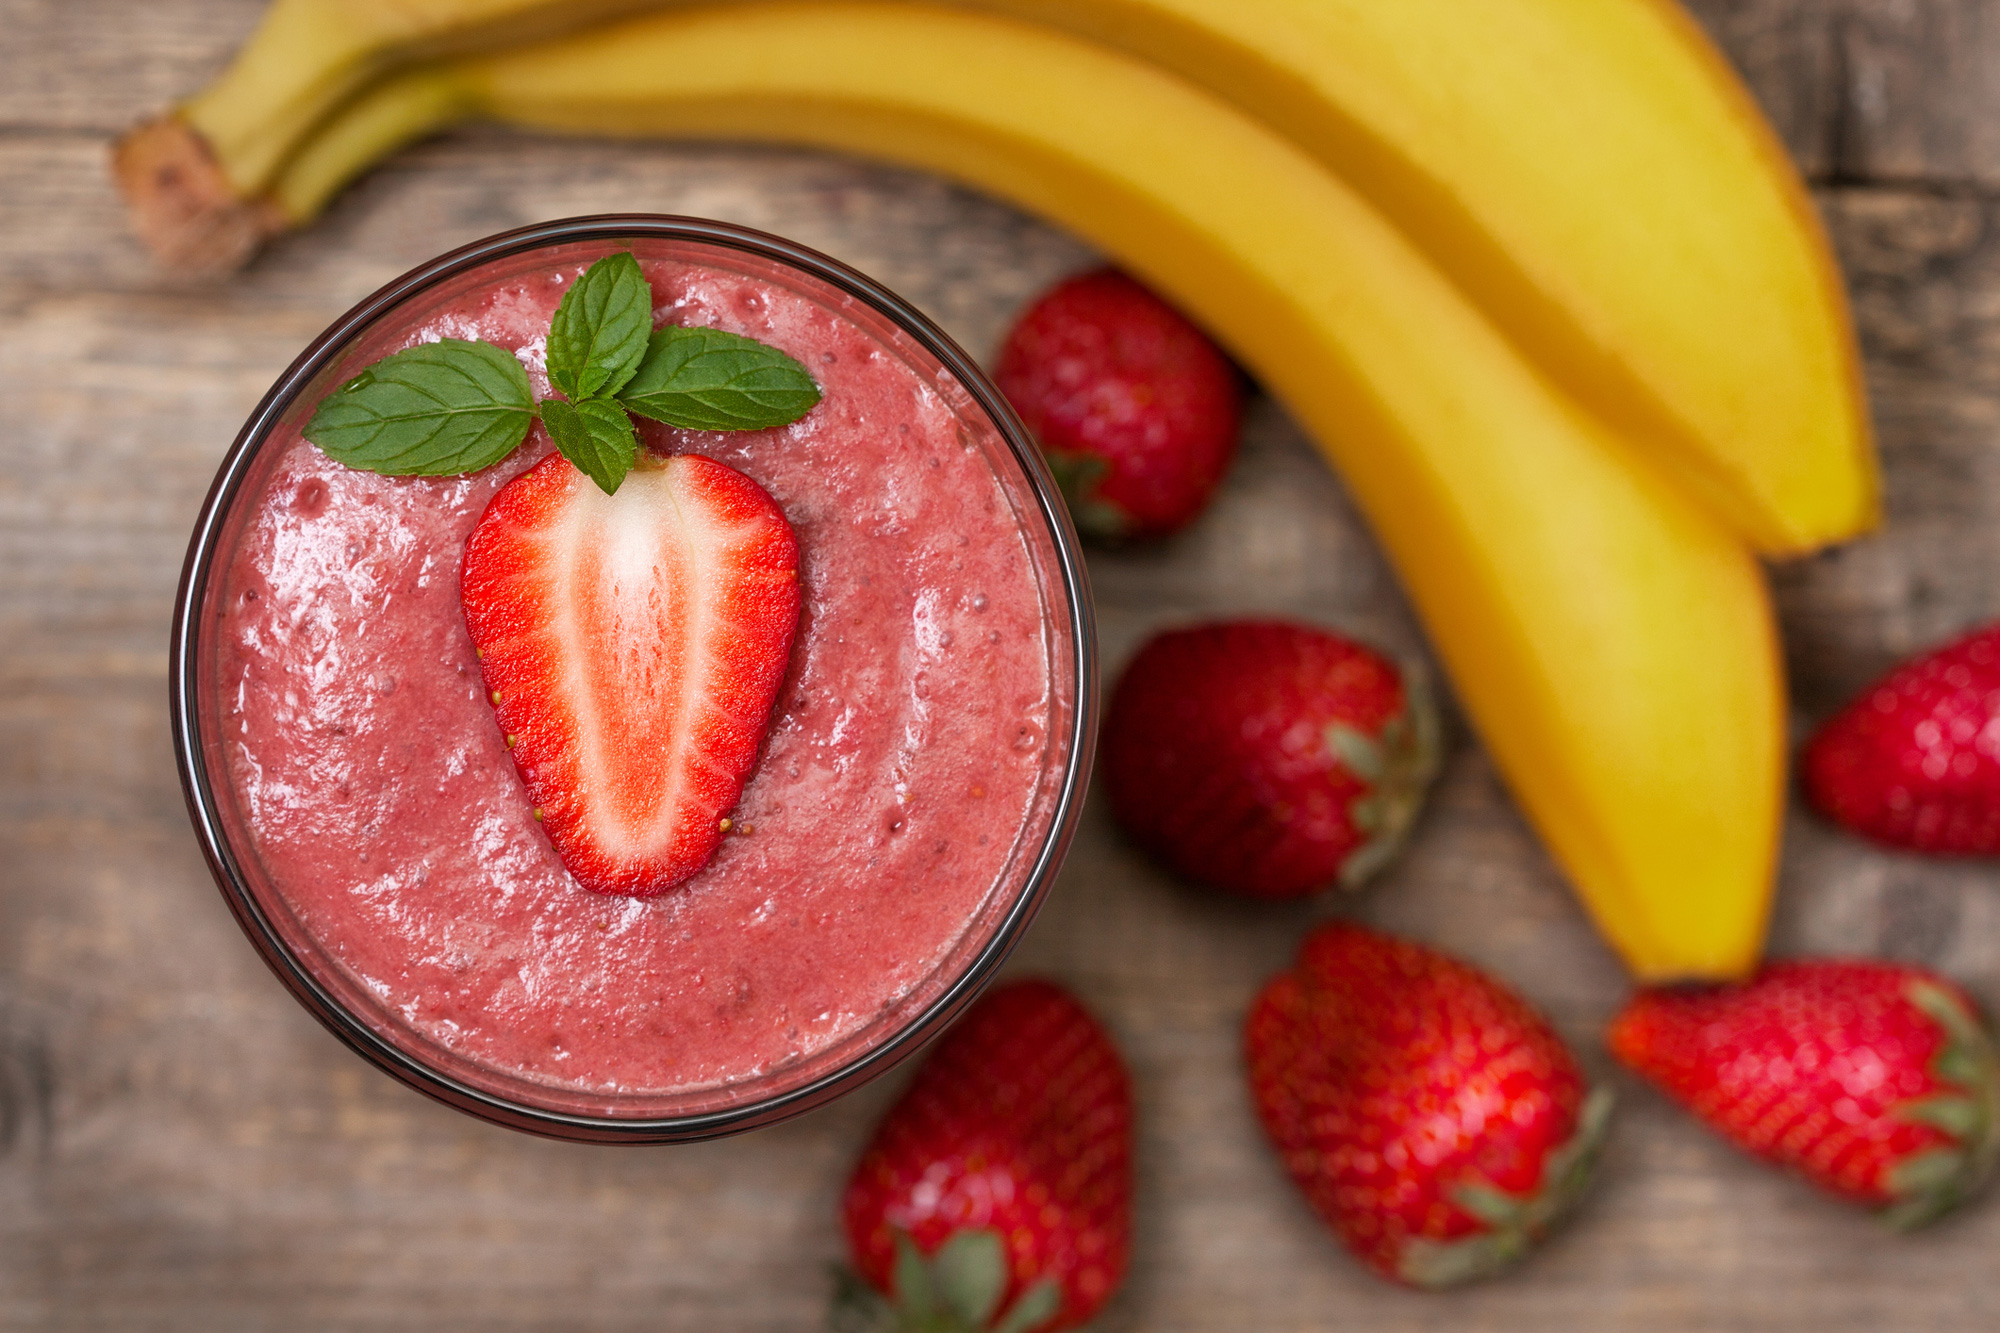 Strawberry Banana Kale Smoothie